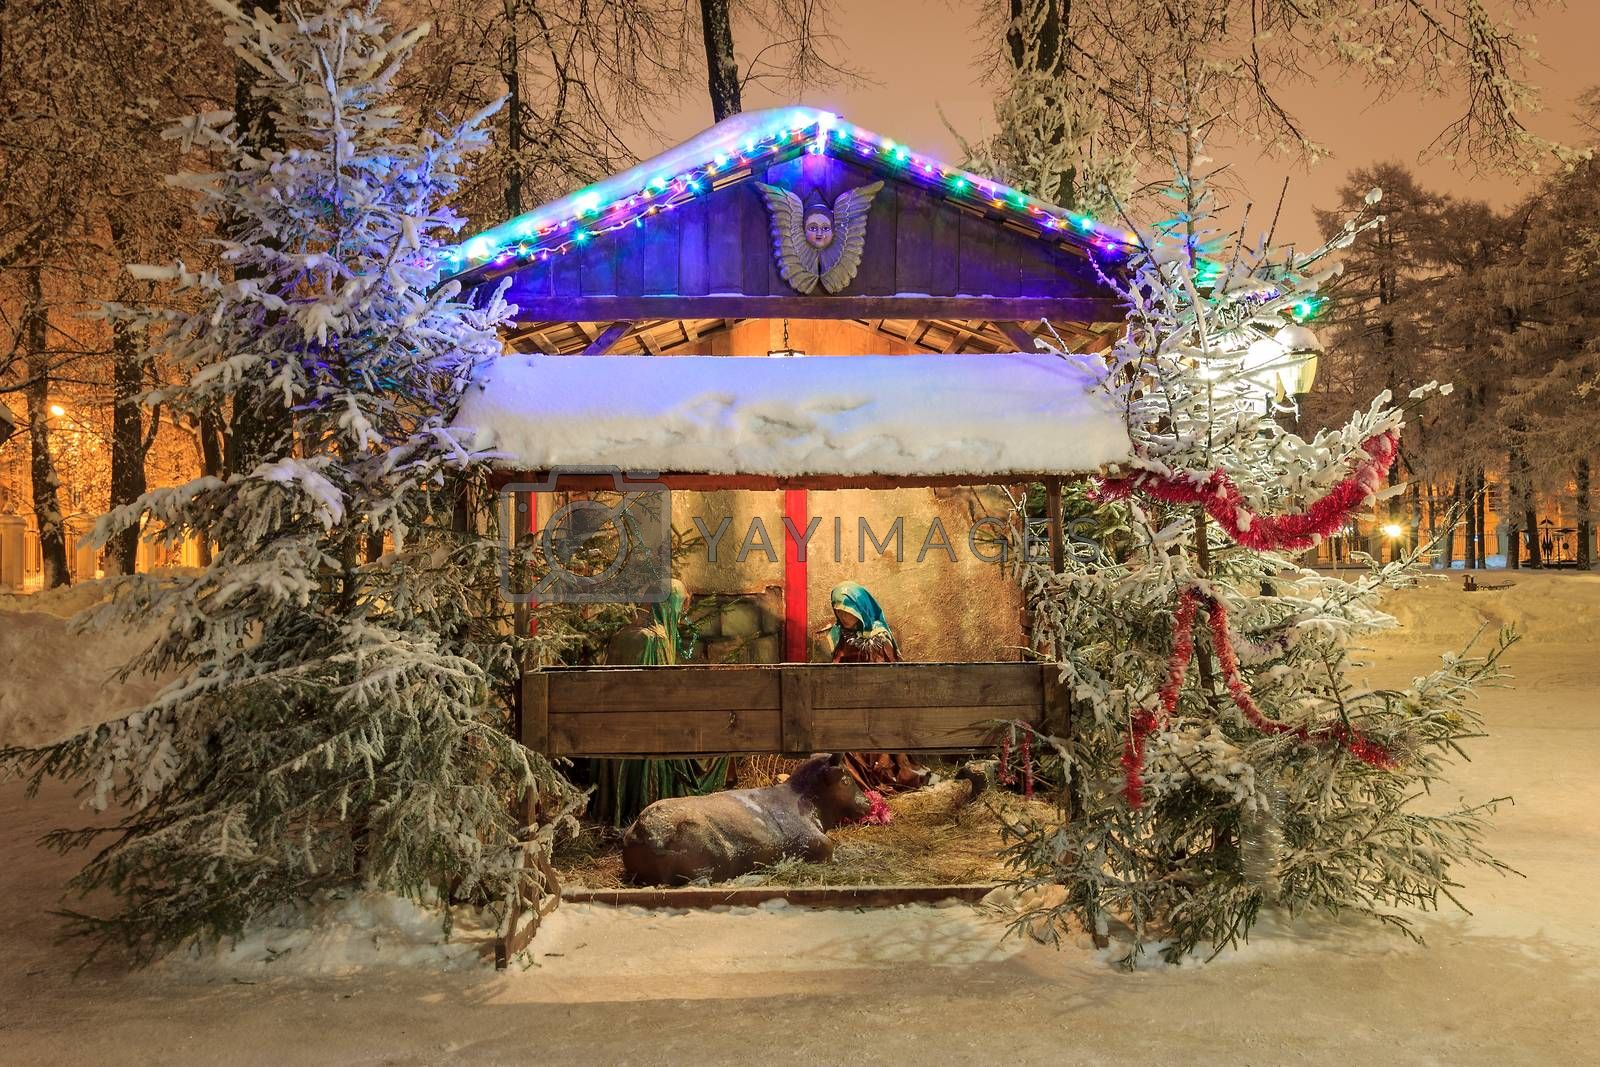 Christmas nativity scene at night park at winter season with garlands and spruces